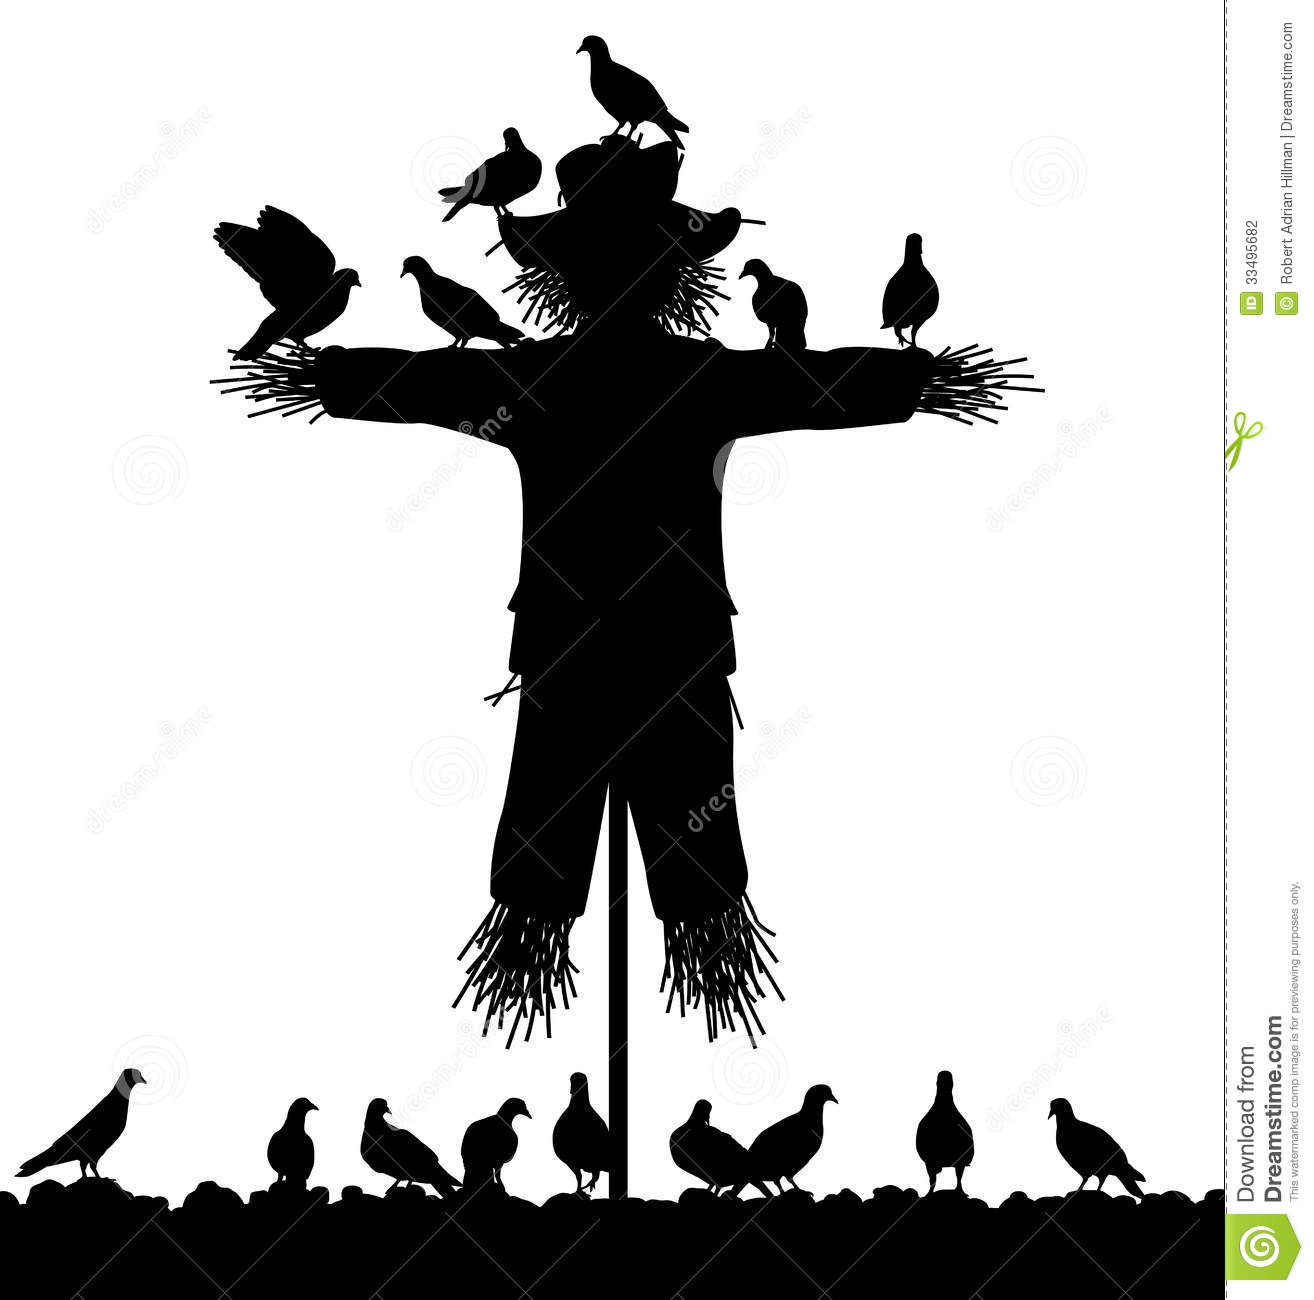 ... flock of pigeons on a scarecrow with all figures as separate objects